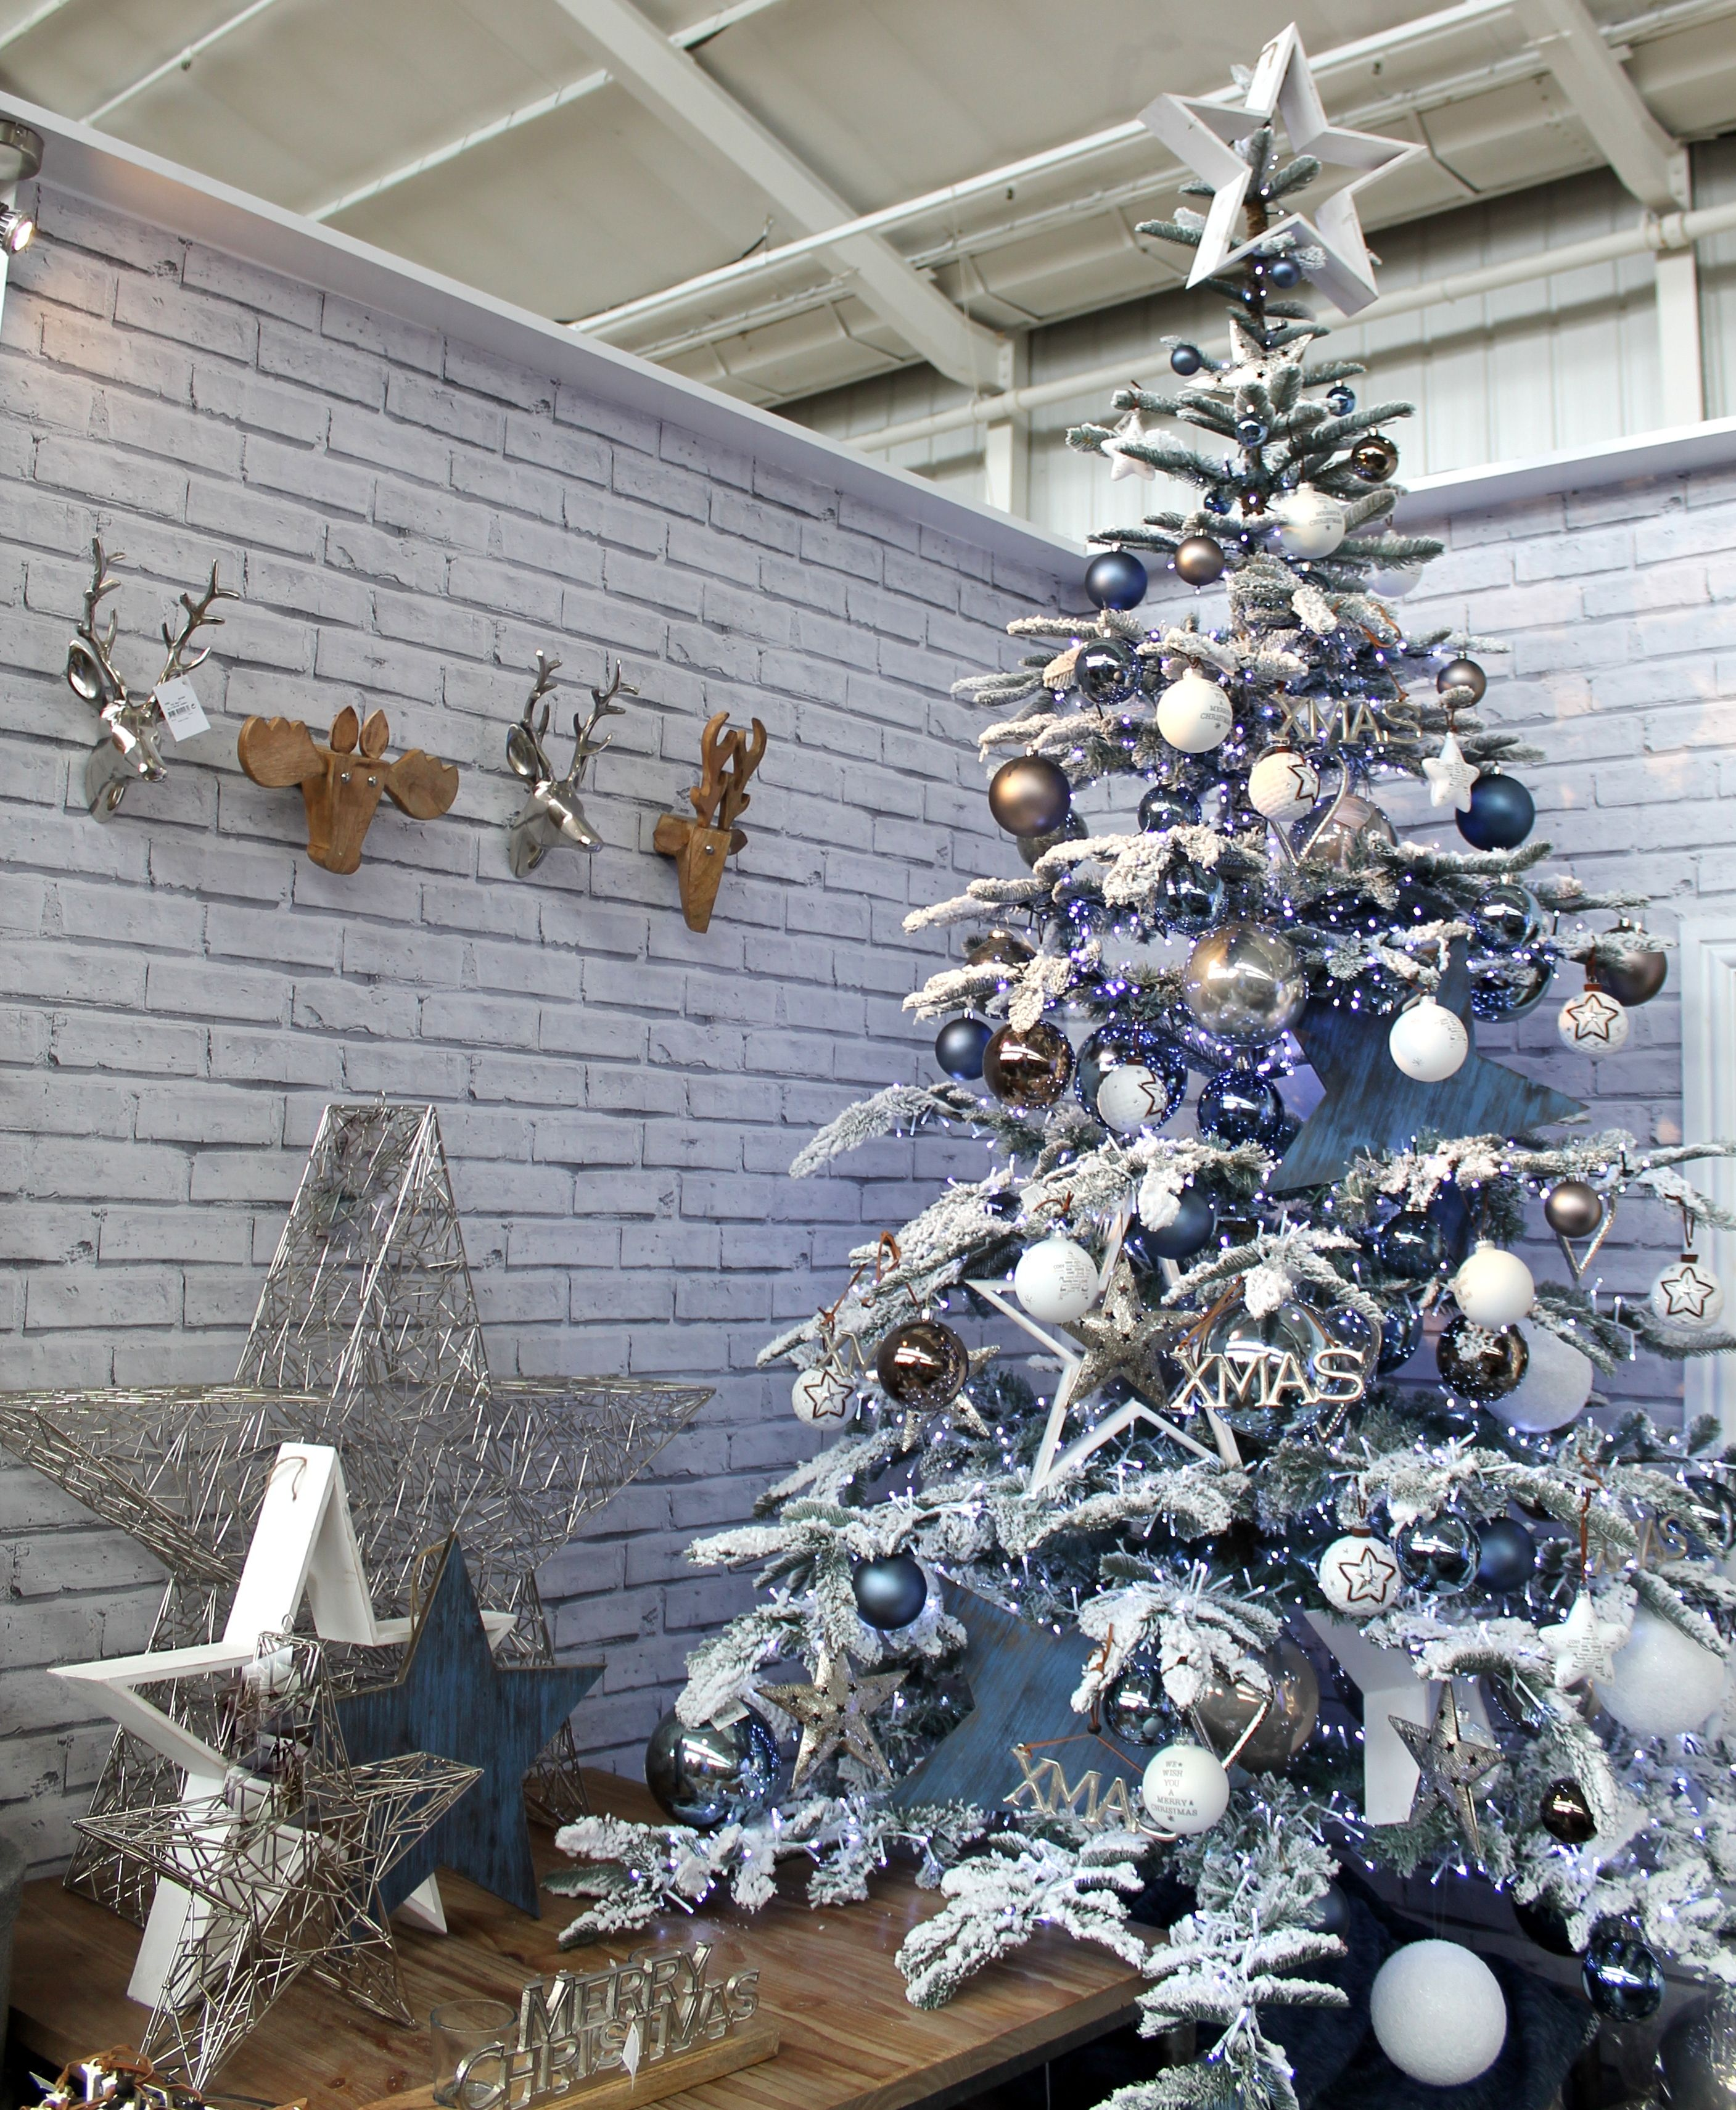 Urban Christmas Tree Design With A Blue Grey And White Colour Scheme Christmas Tree Design Flocked Christmas Trees Decorated Grey Christmas